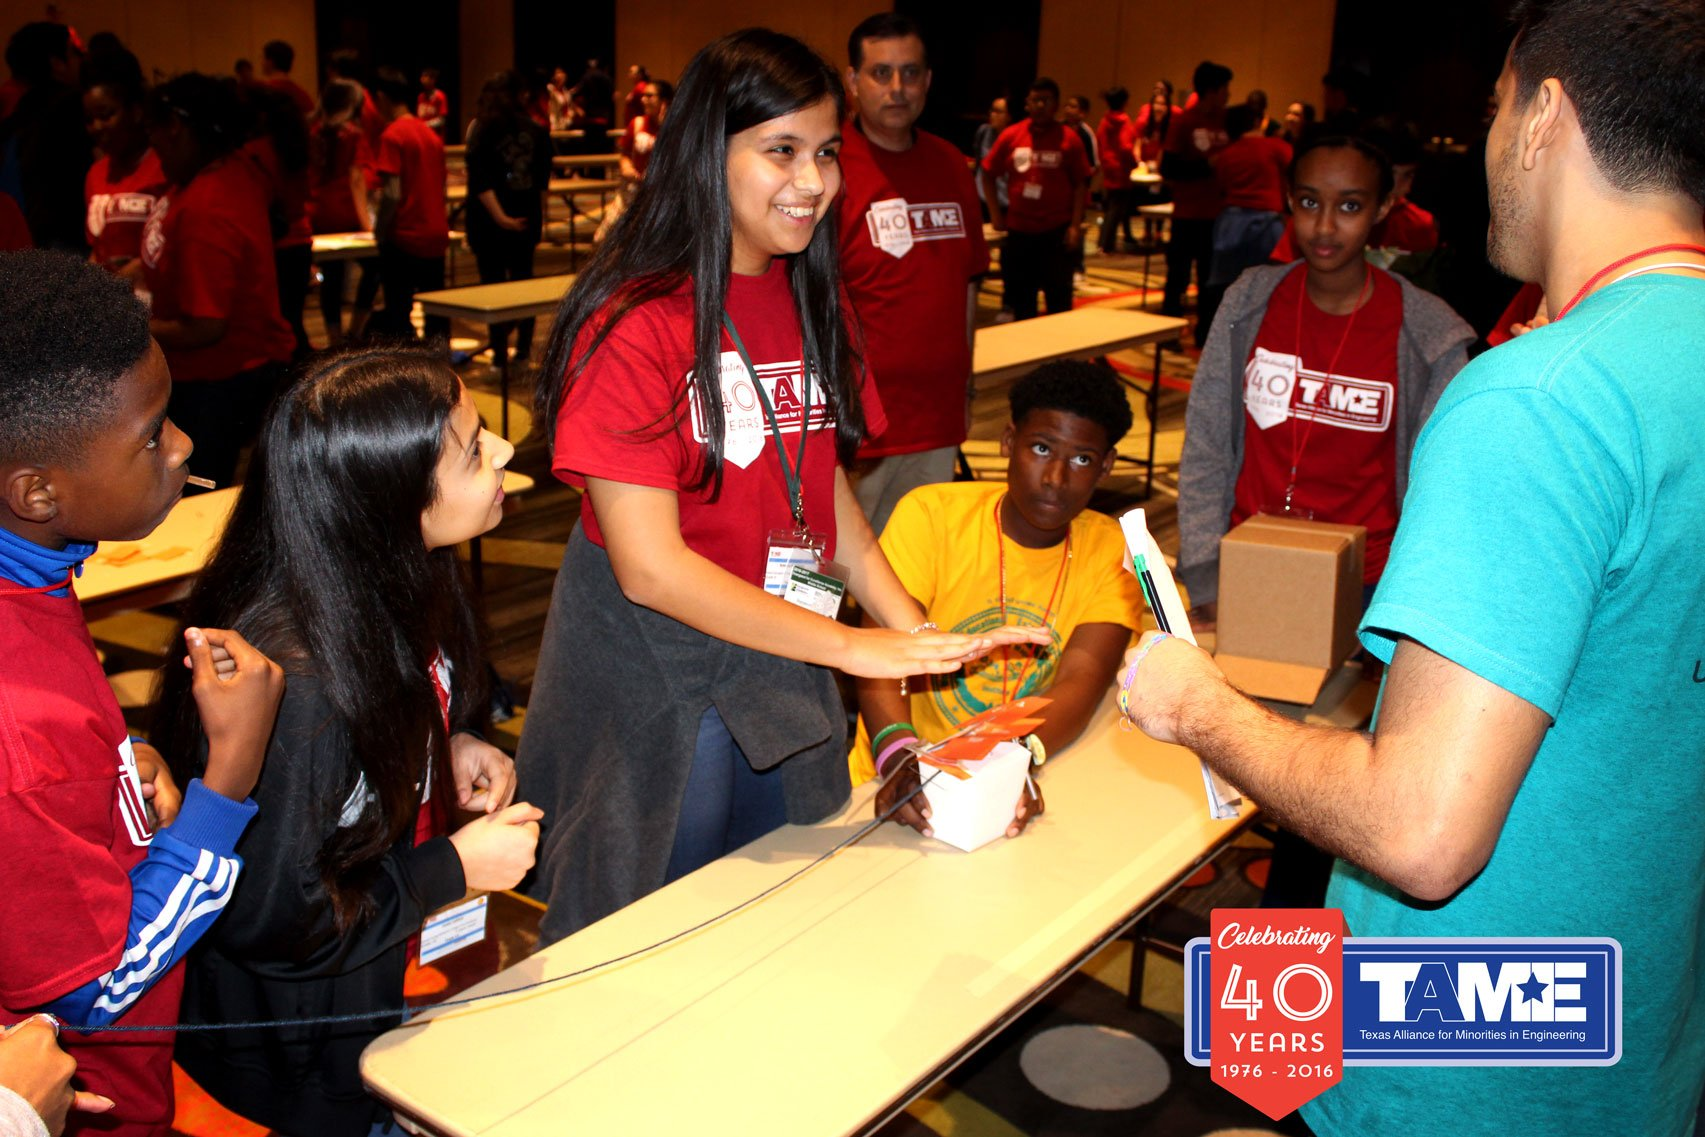 (Houston, TX) – The 2017 TAME Gulf Coast STEM Competition was hosted at The University of Houston on Saturday February 11, 2017. The event, held free of cost to participants, brought together over 130 student competitors (grades 6-12) from across the region.